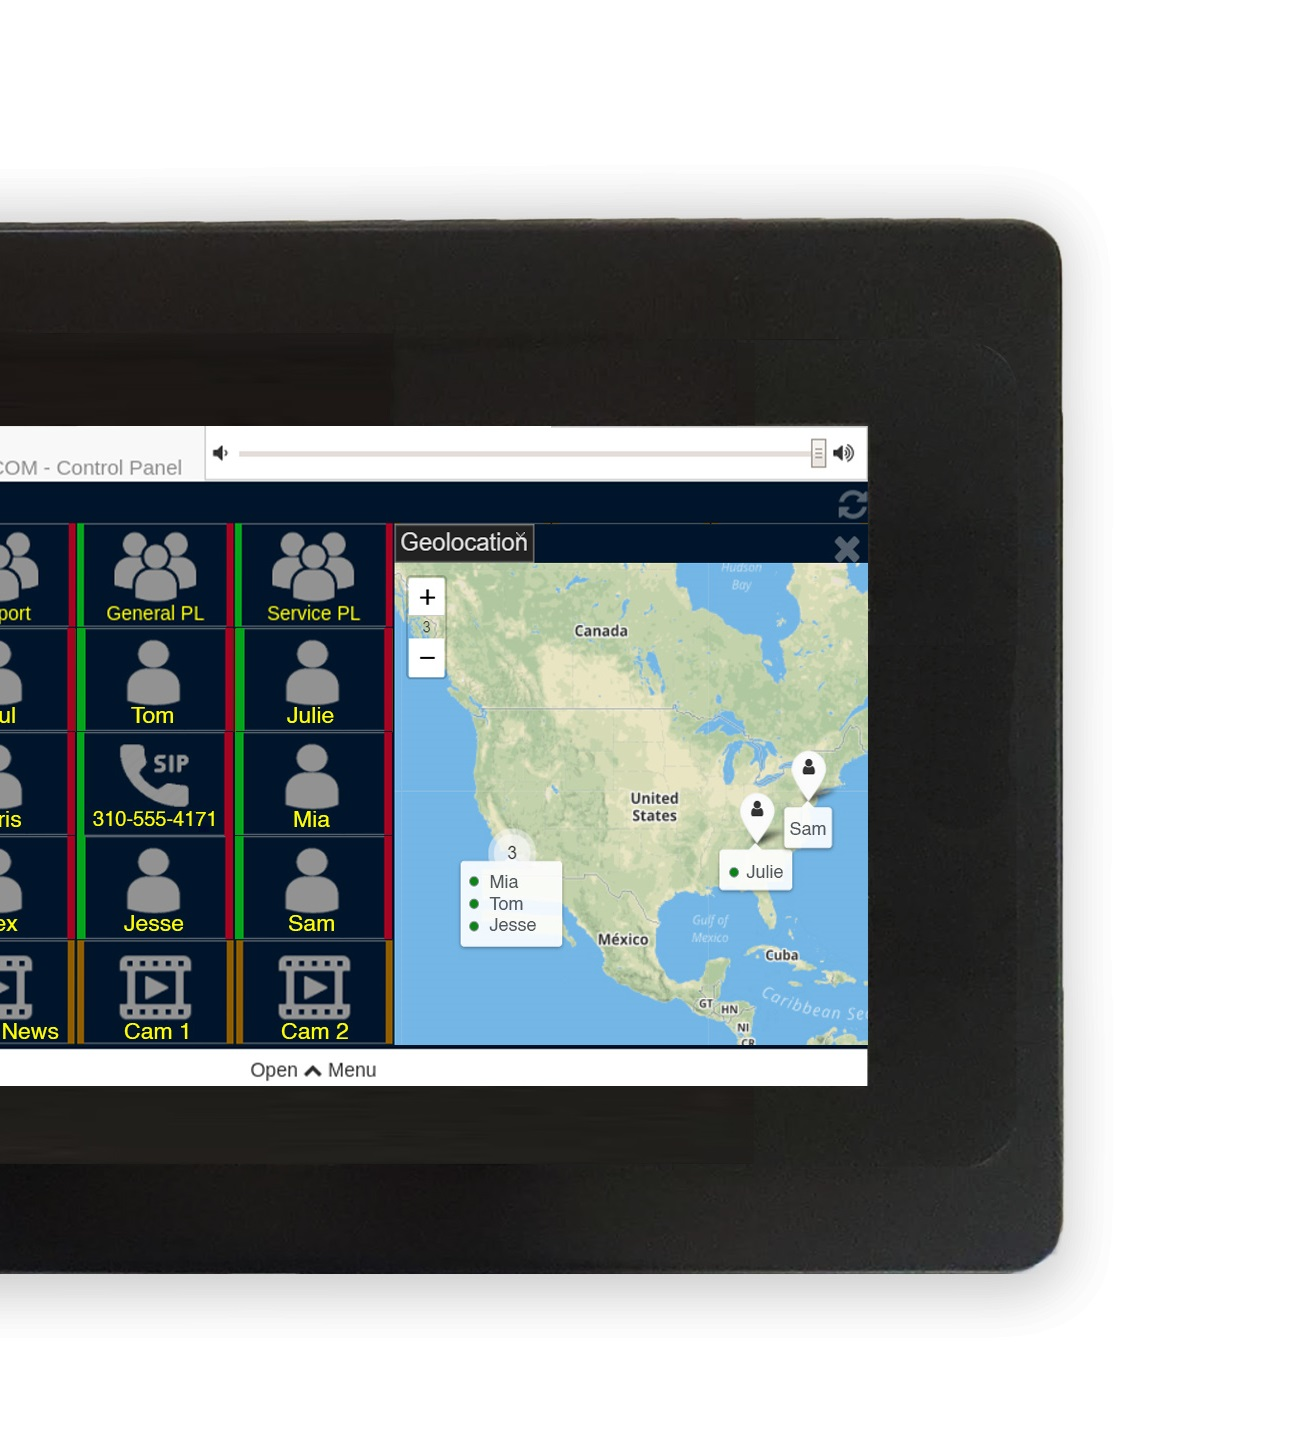 VCOM Desktop Control Panel D405 showing geolocation map with user locations